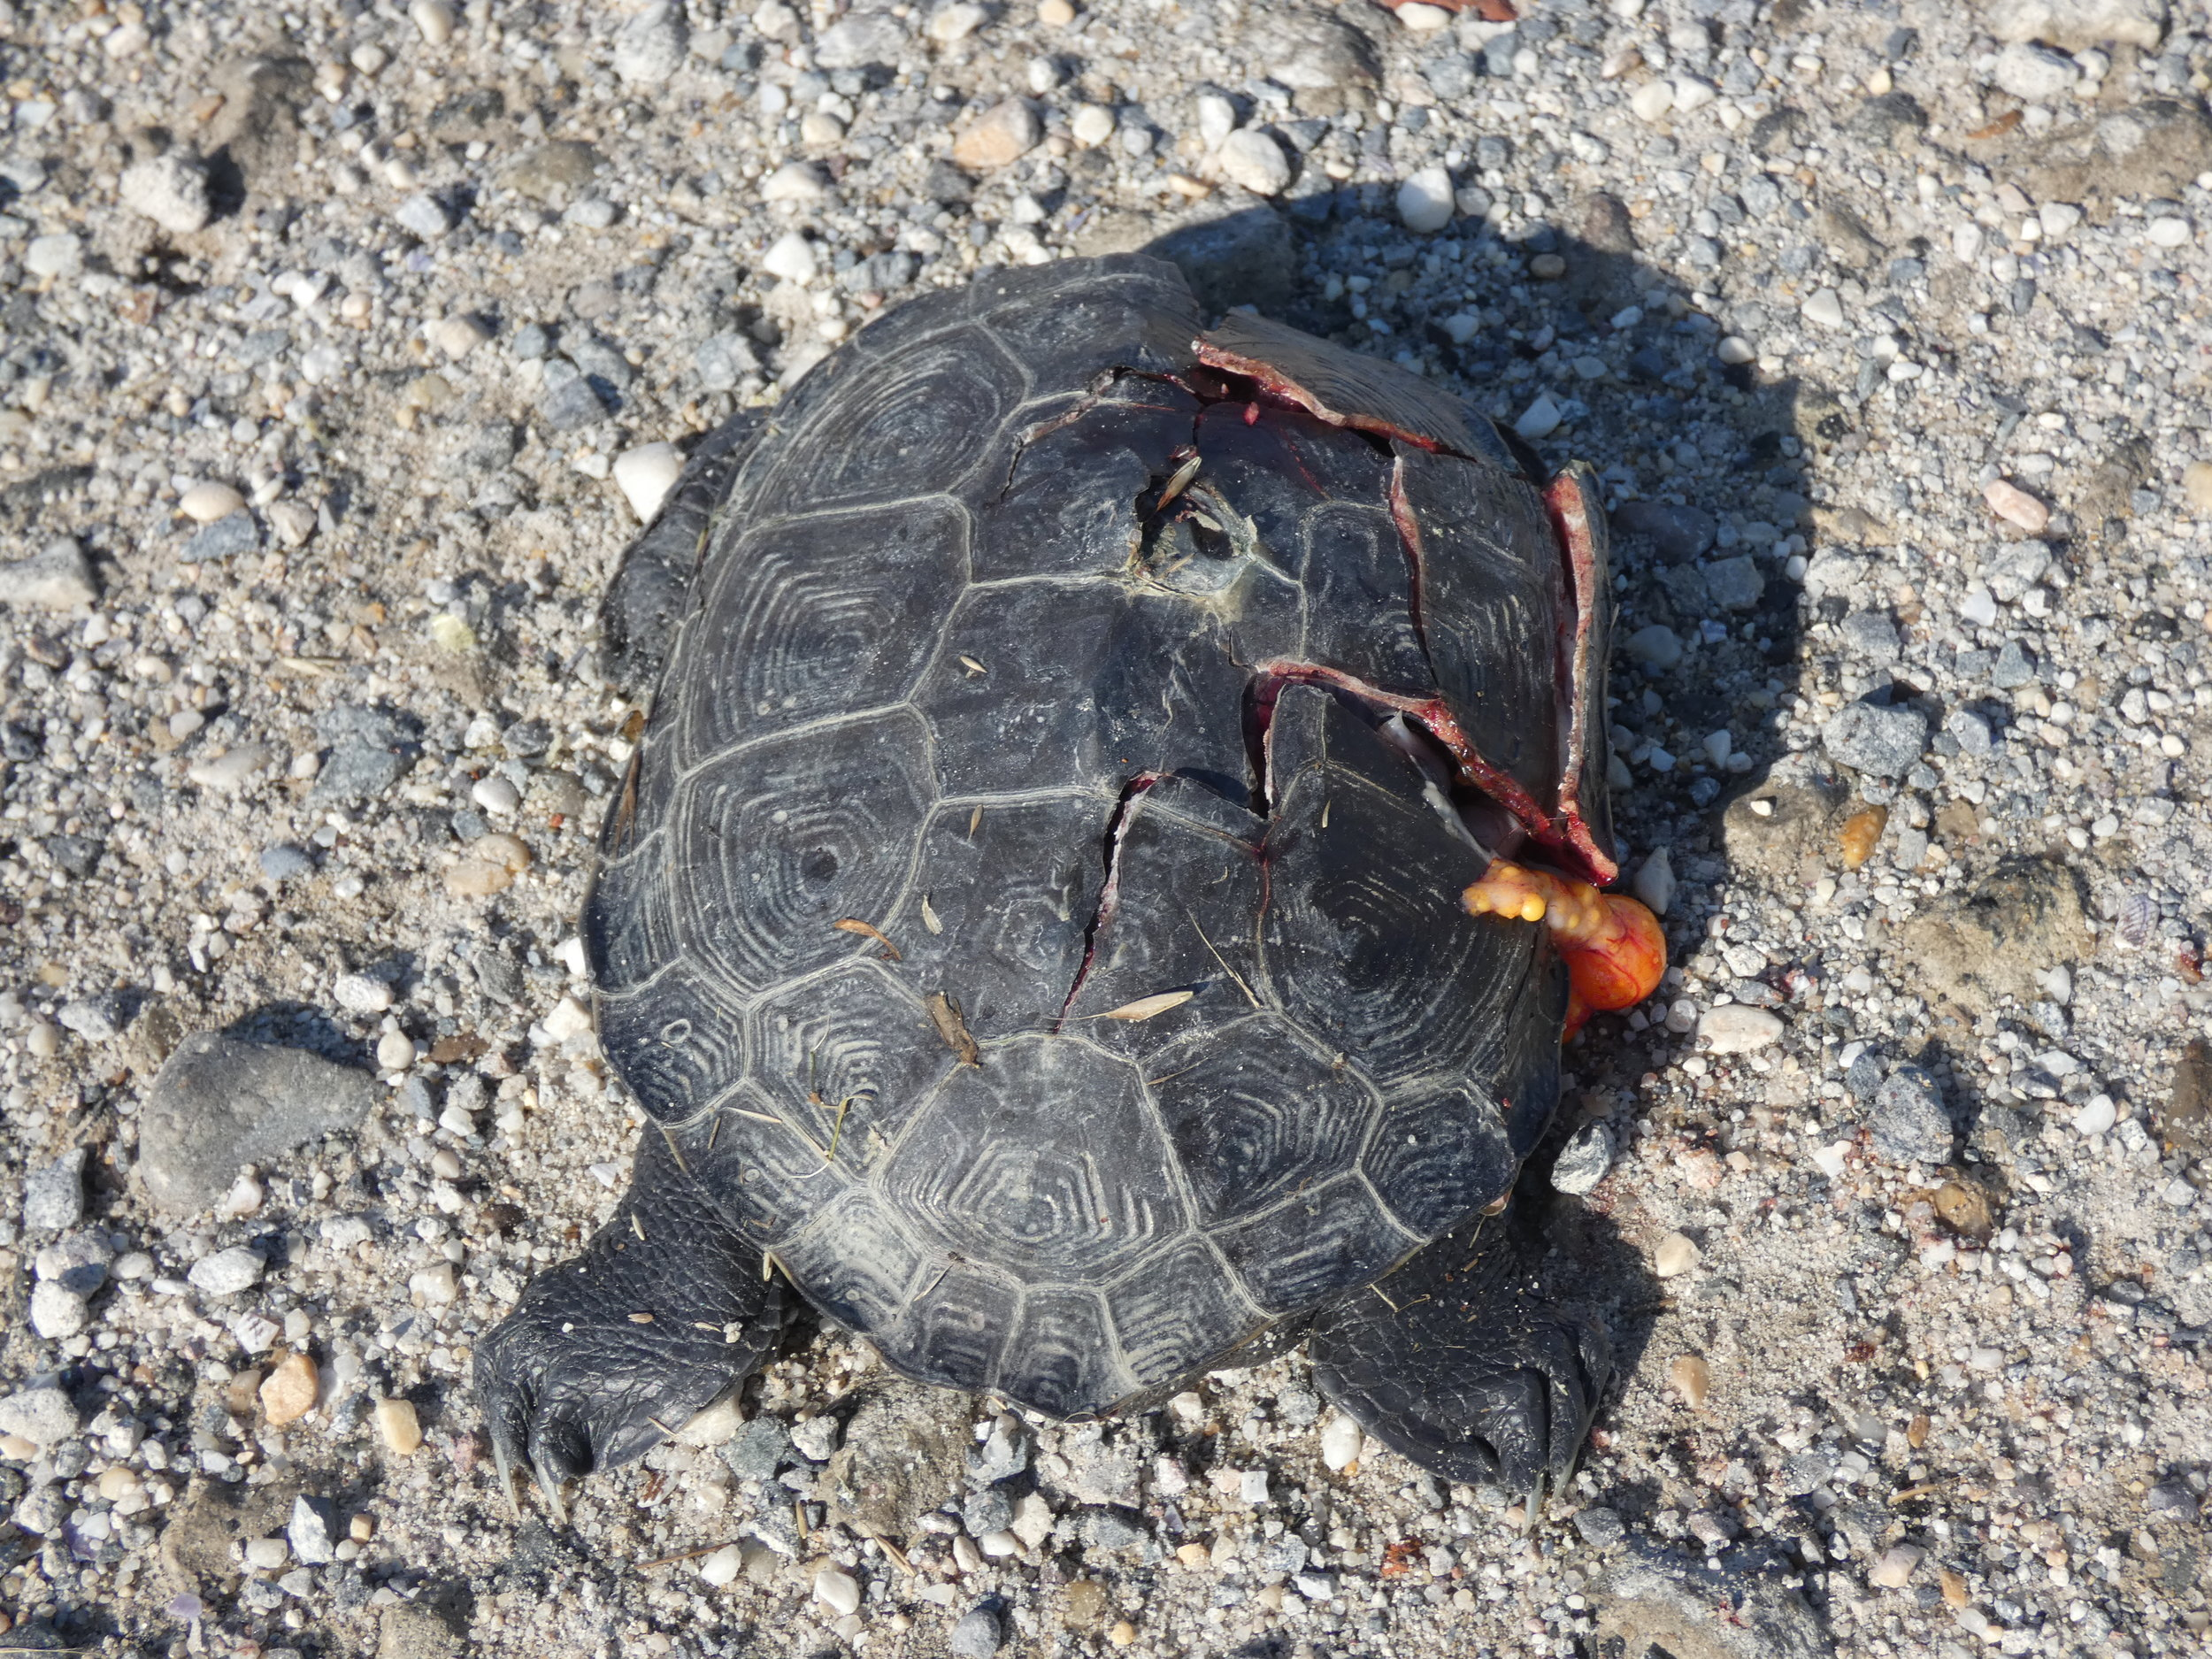 A dead Diamondback terrapin turtle left on the side of the road.